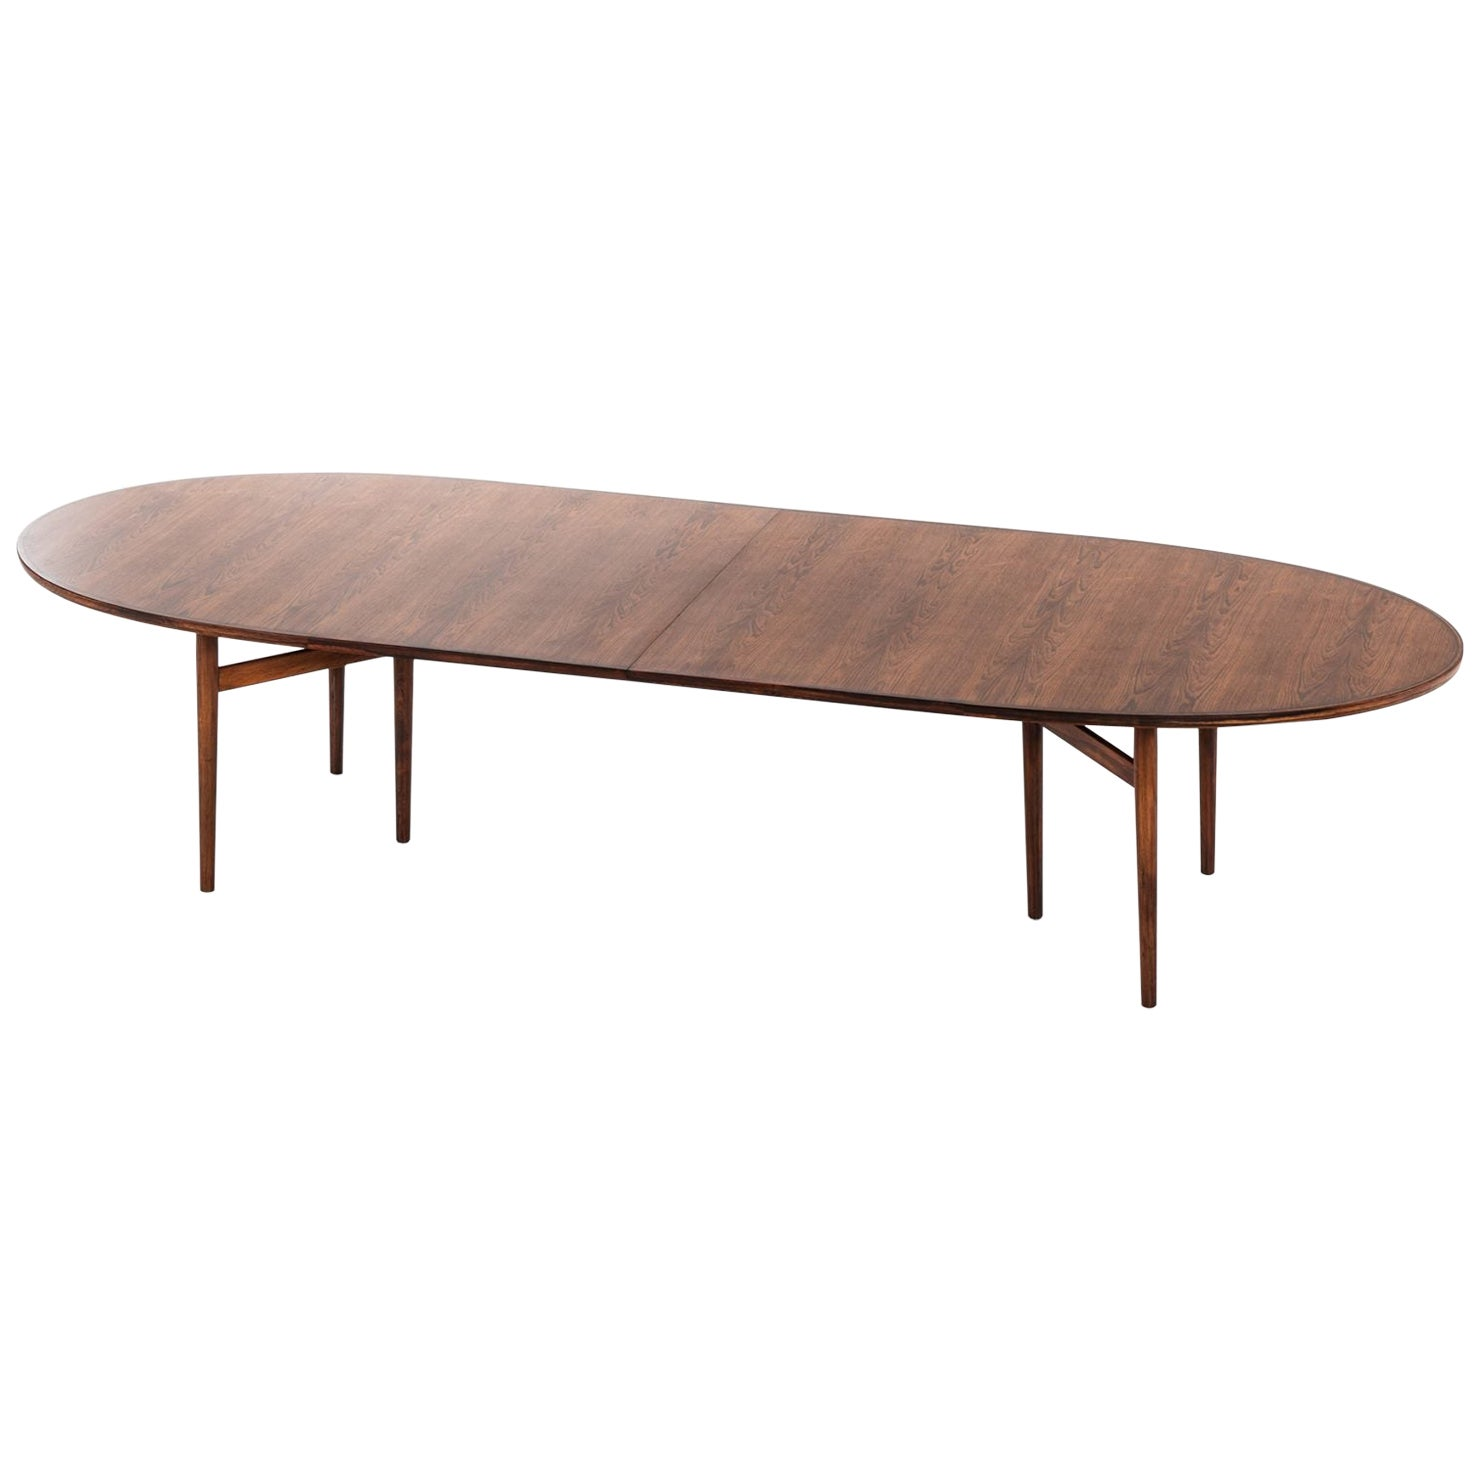 Arne Vodder Dining / Conference Table Produced by Sibast Møbelfabrik in Denmark